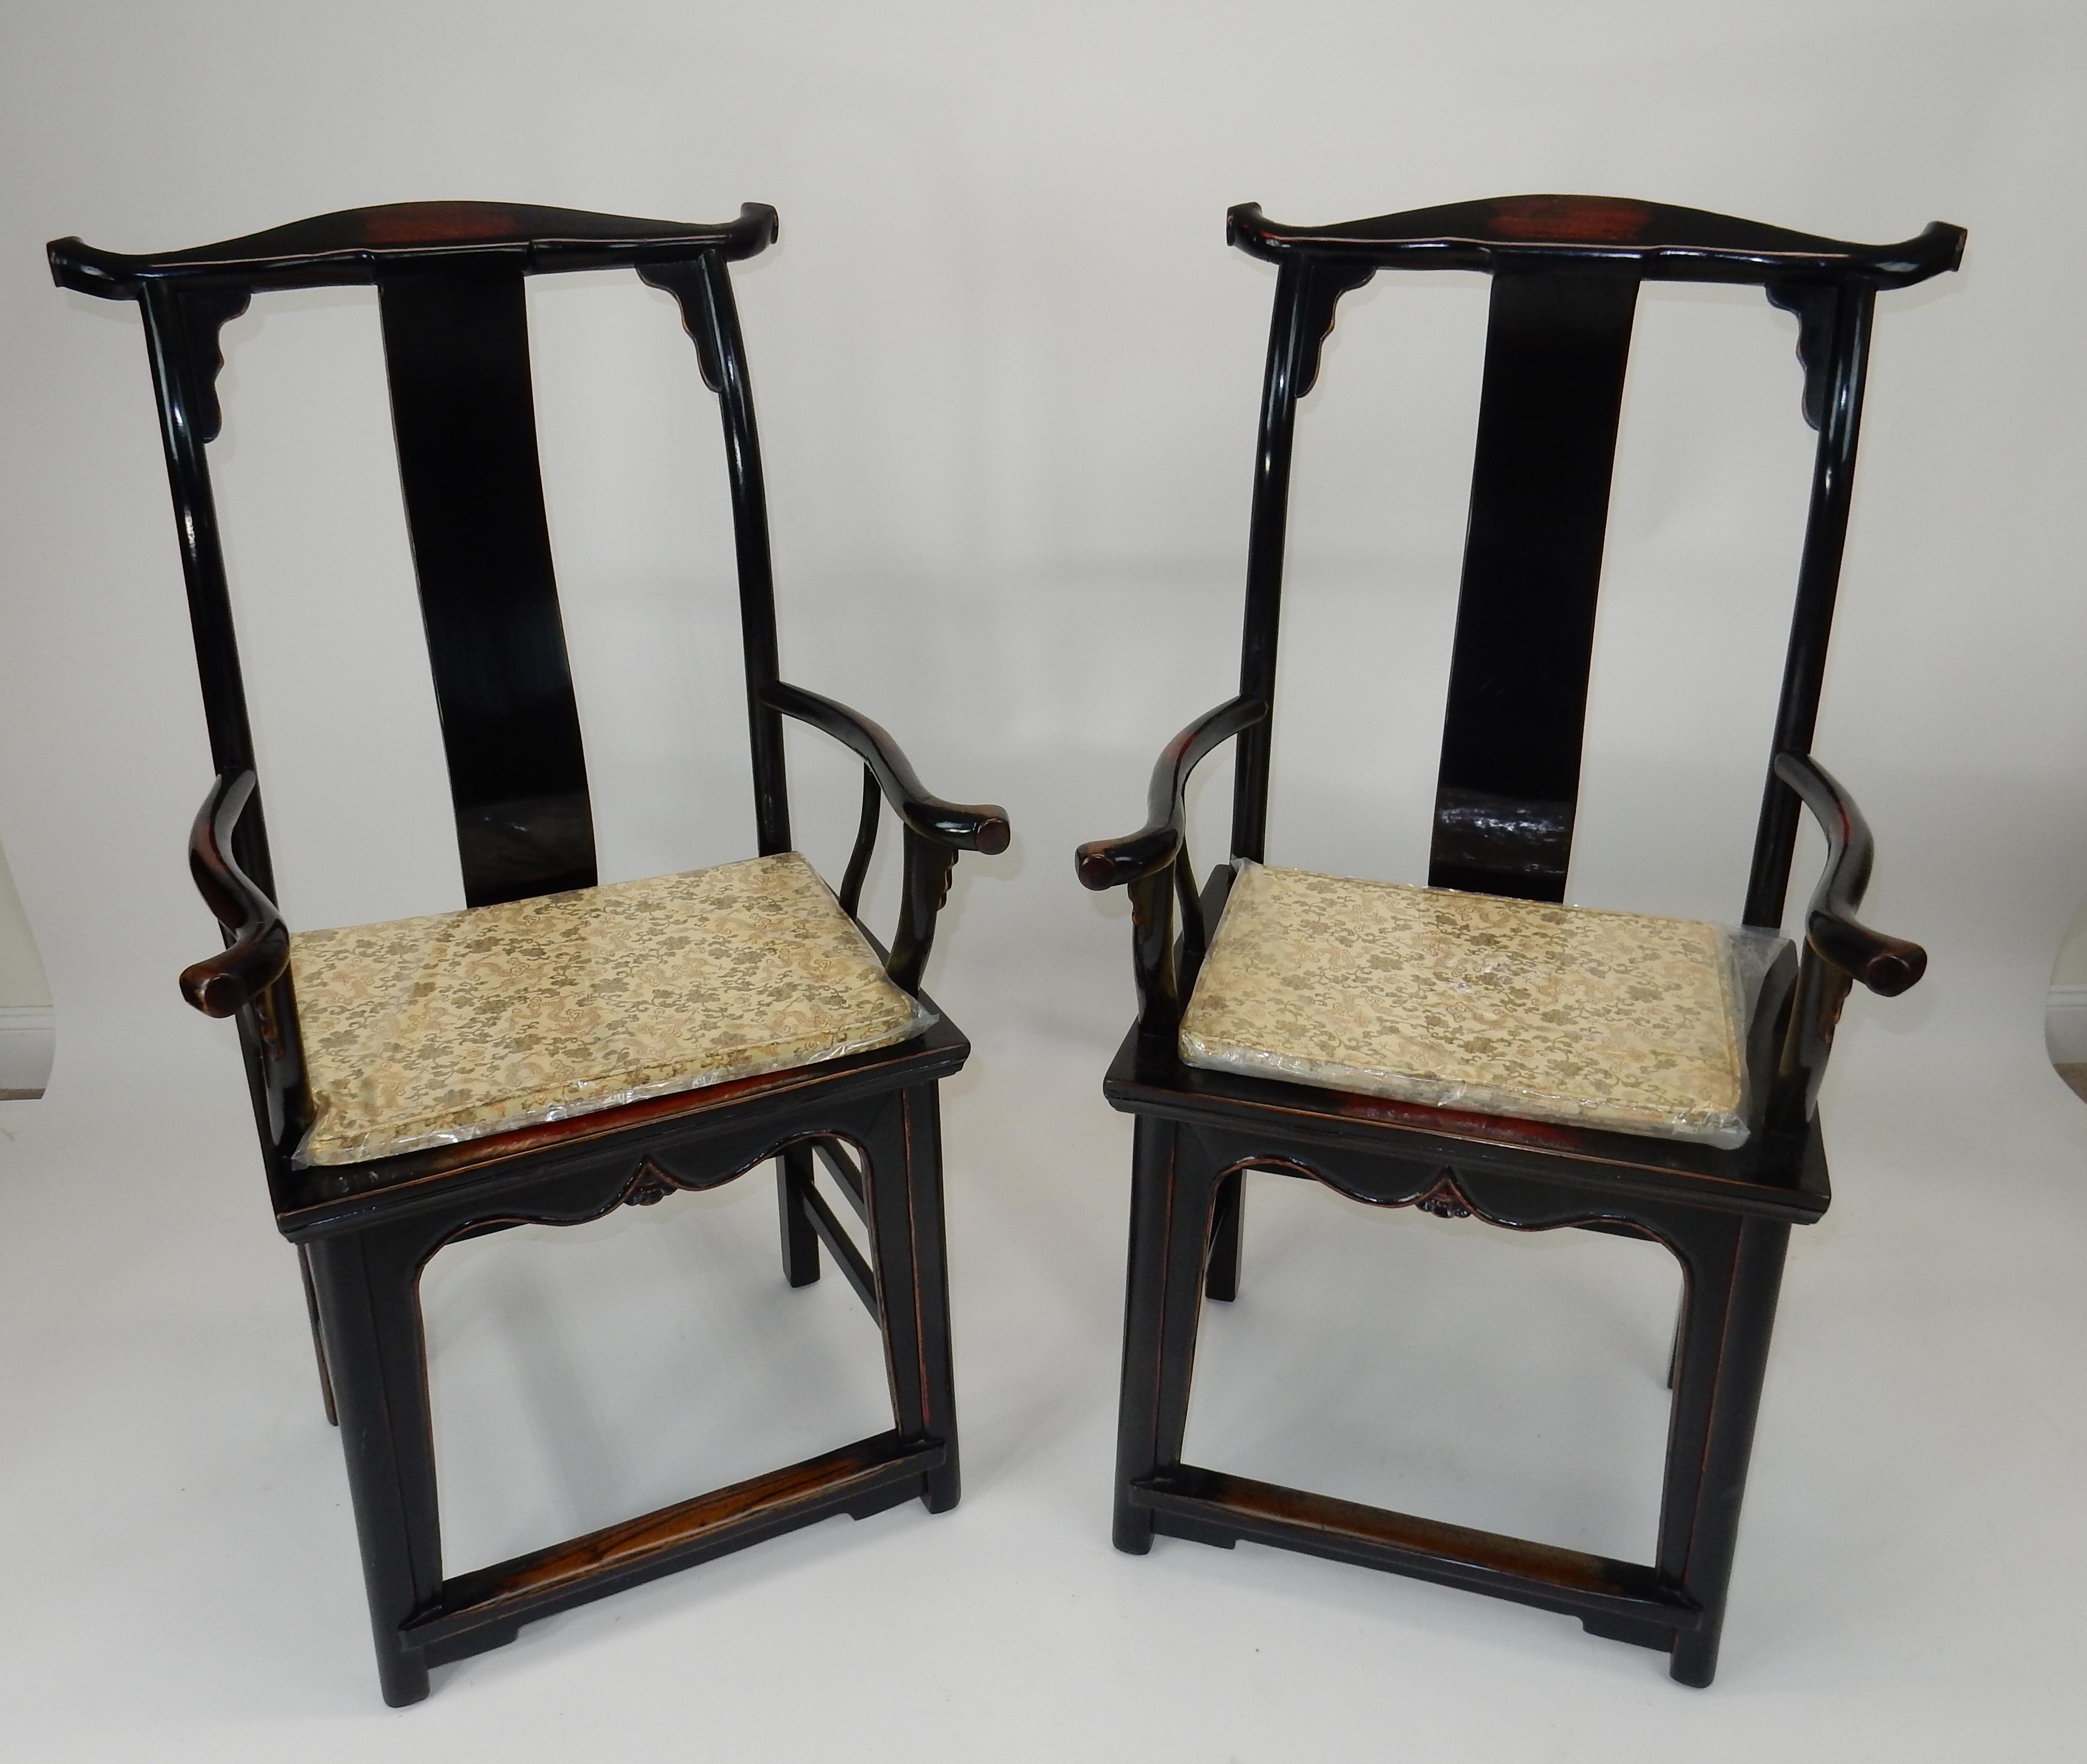 C. 1860 Antique Chinese Black Lacquer Yoke Back Chairs   A Pair   Image 2